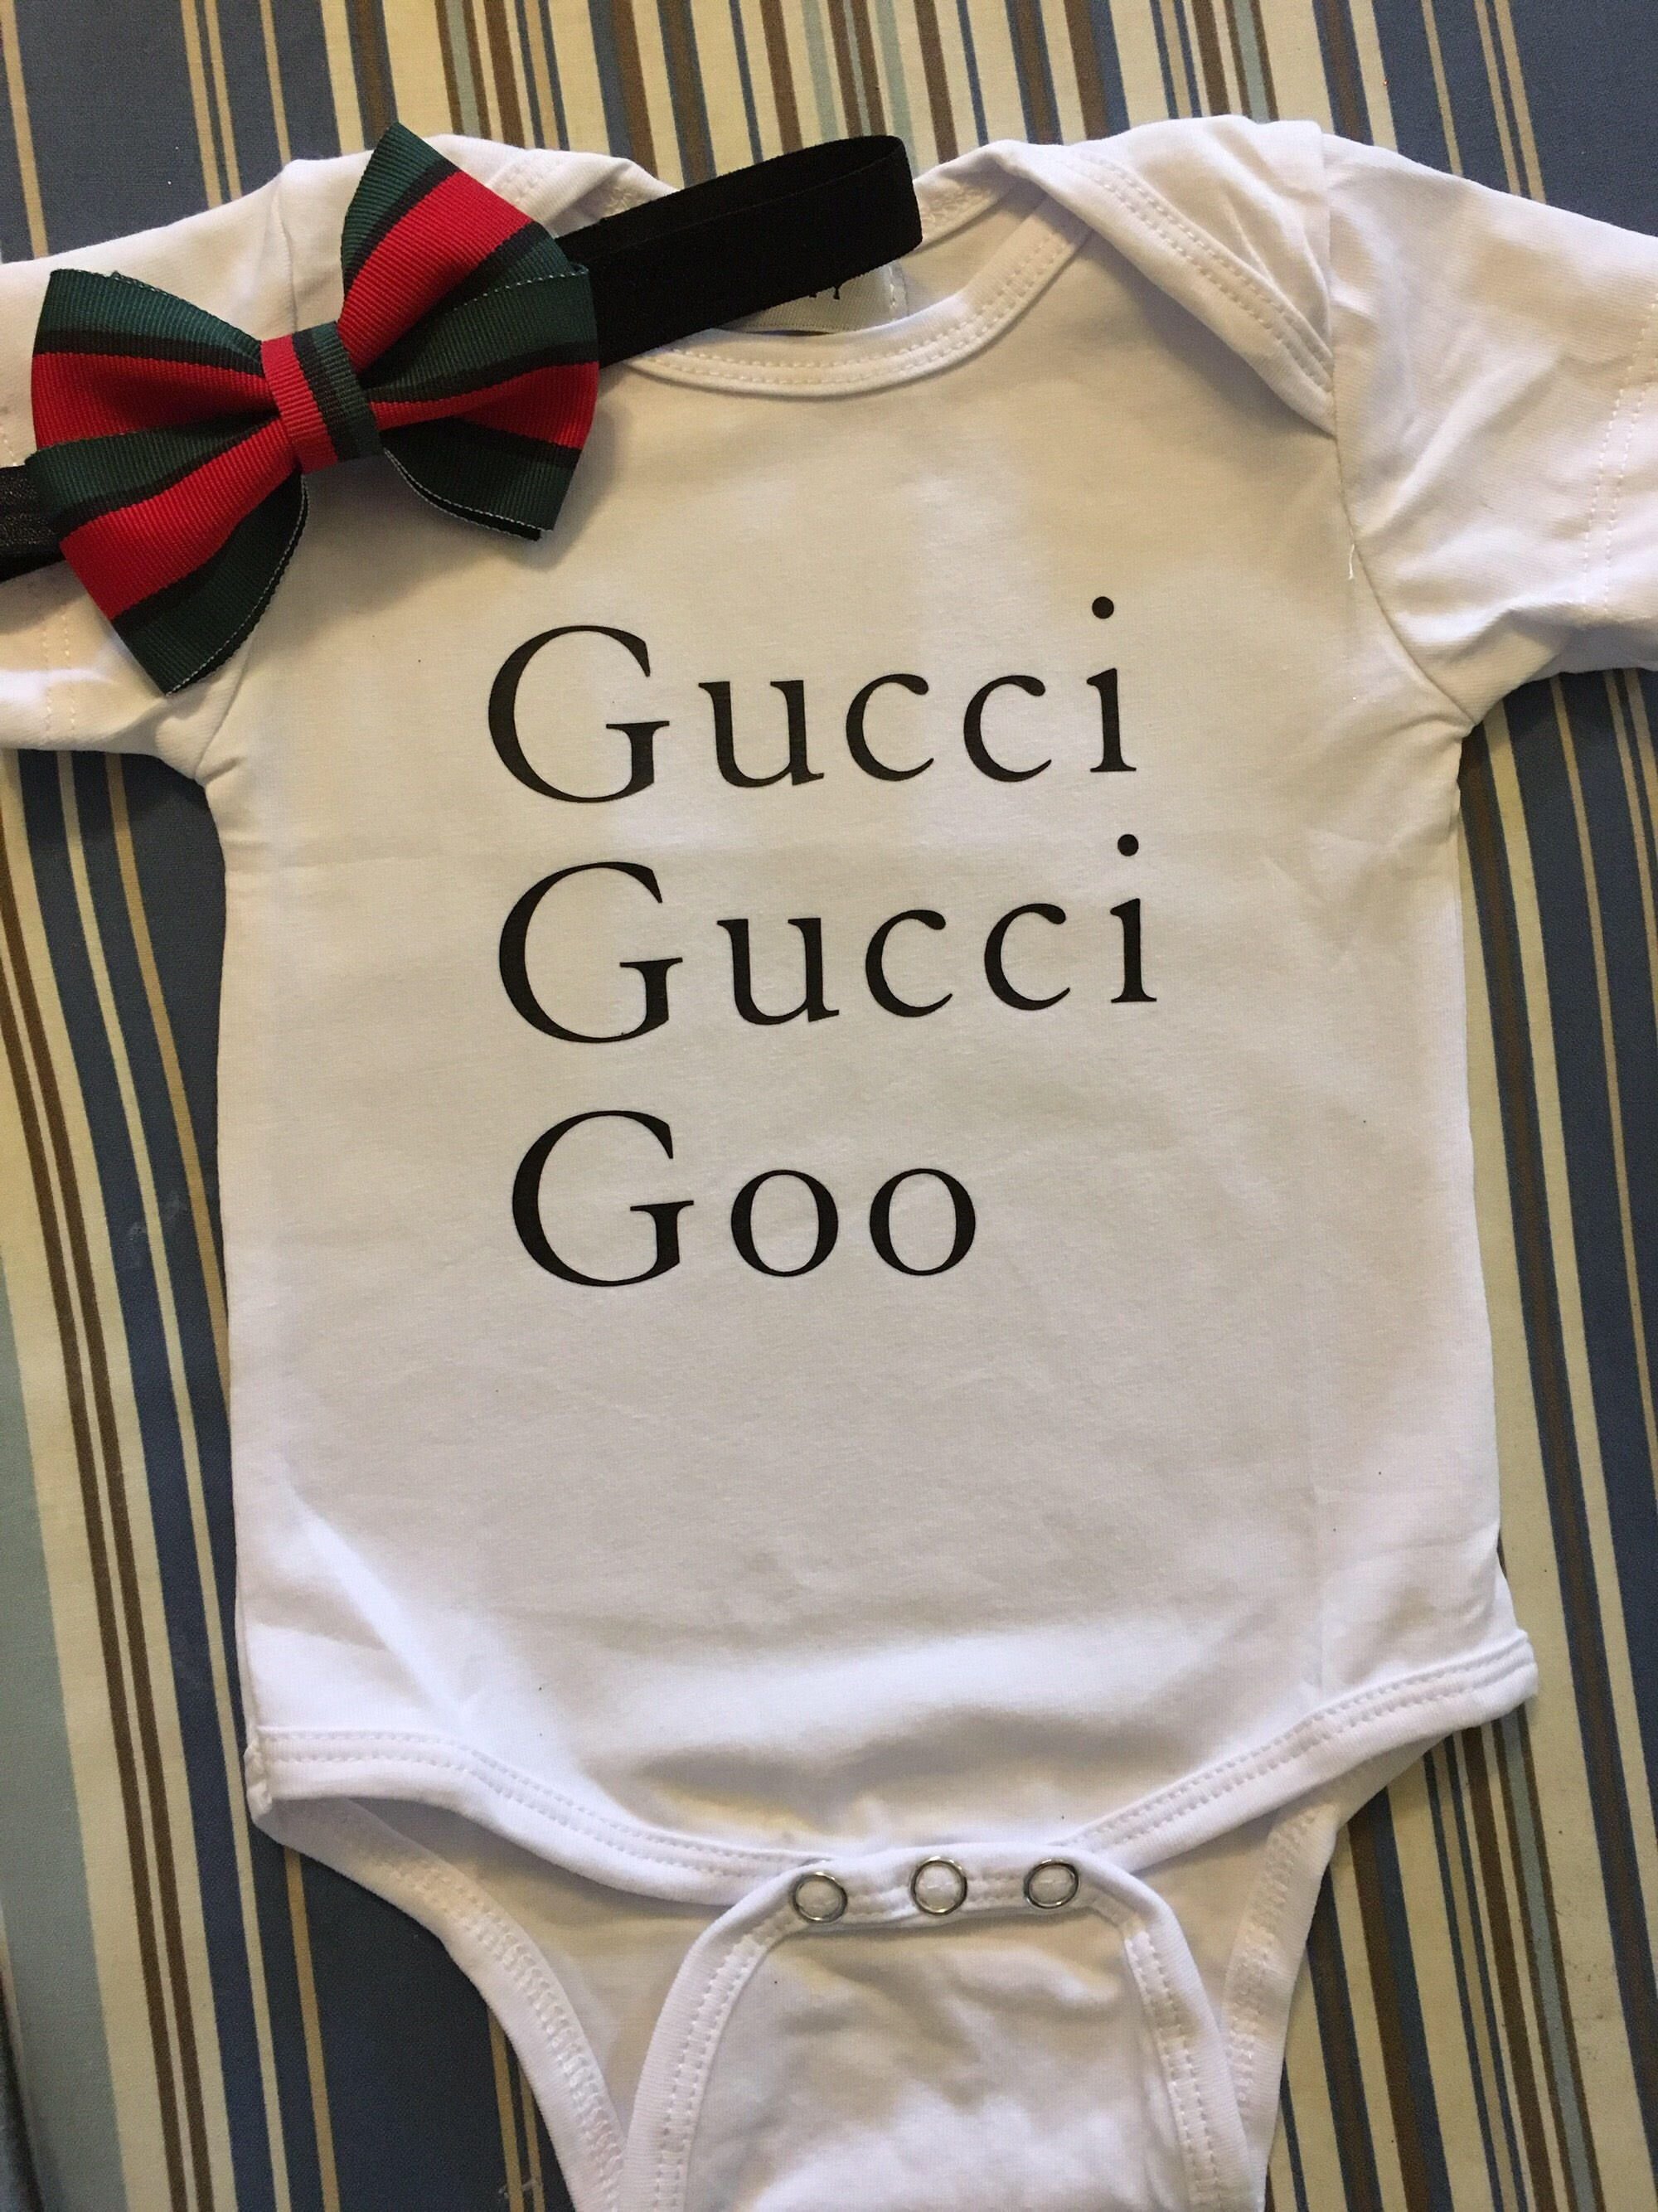 4b2c2105eca2 Gucci gucci goo headband  amp  onesie by SashaySociety on Etsy https   www